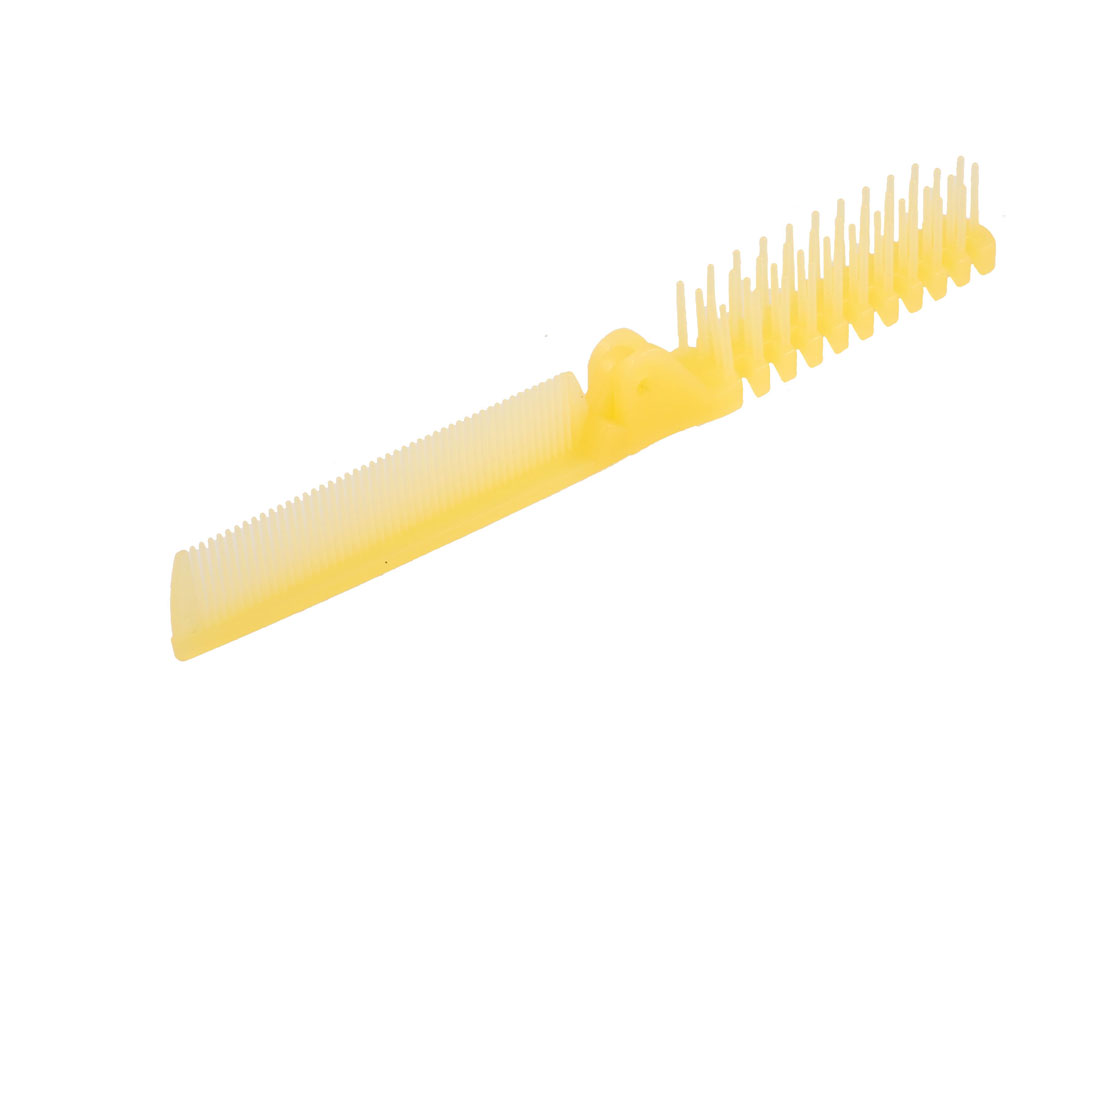 2Pcs Lady Clear Yellow Fishbone Shaped 2 Way Folding Hair Brush Straight Comb